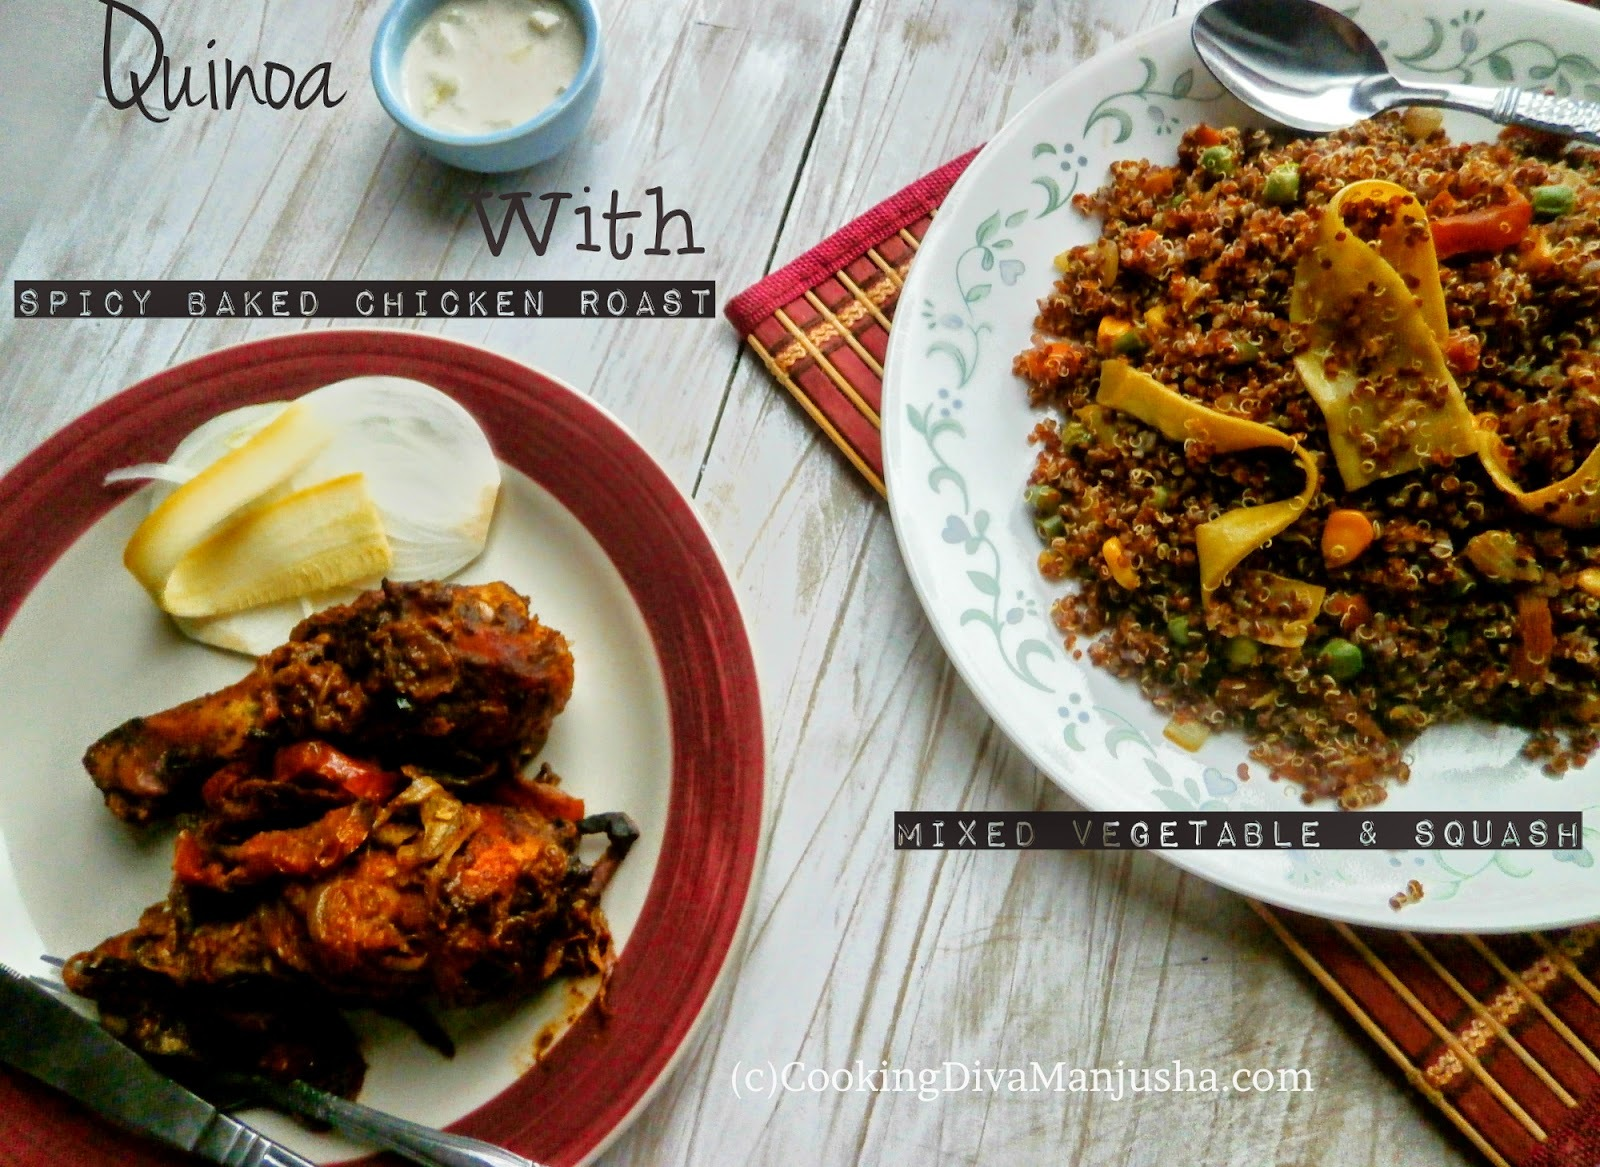 Quinoa with mixed vegetables,squash ribbons & spicy baked chicken drumsticks Roast